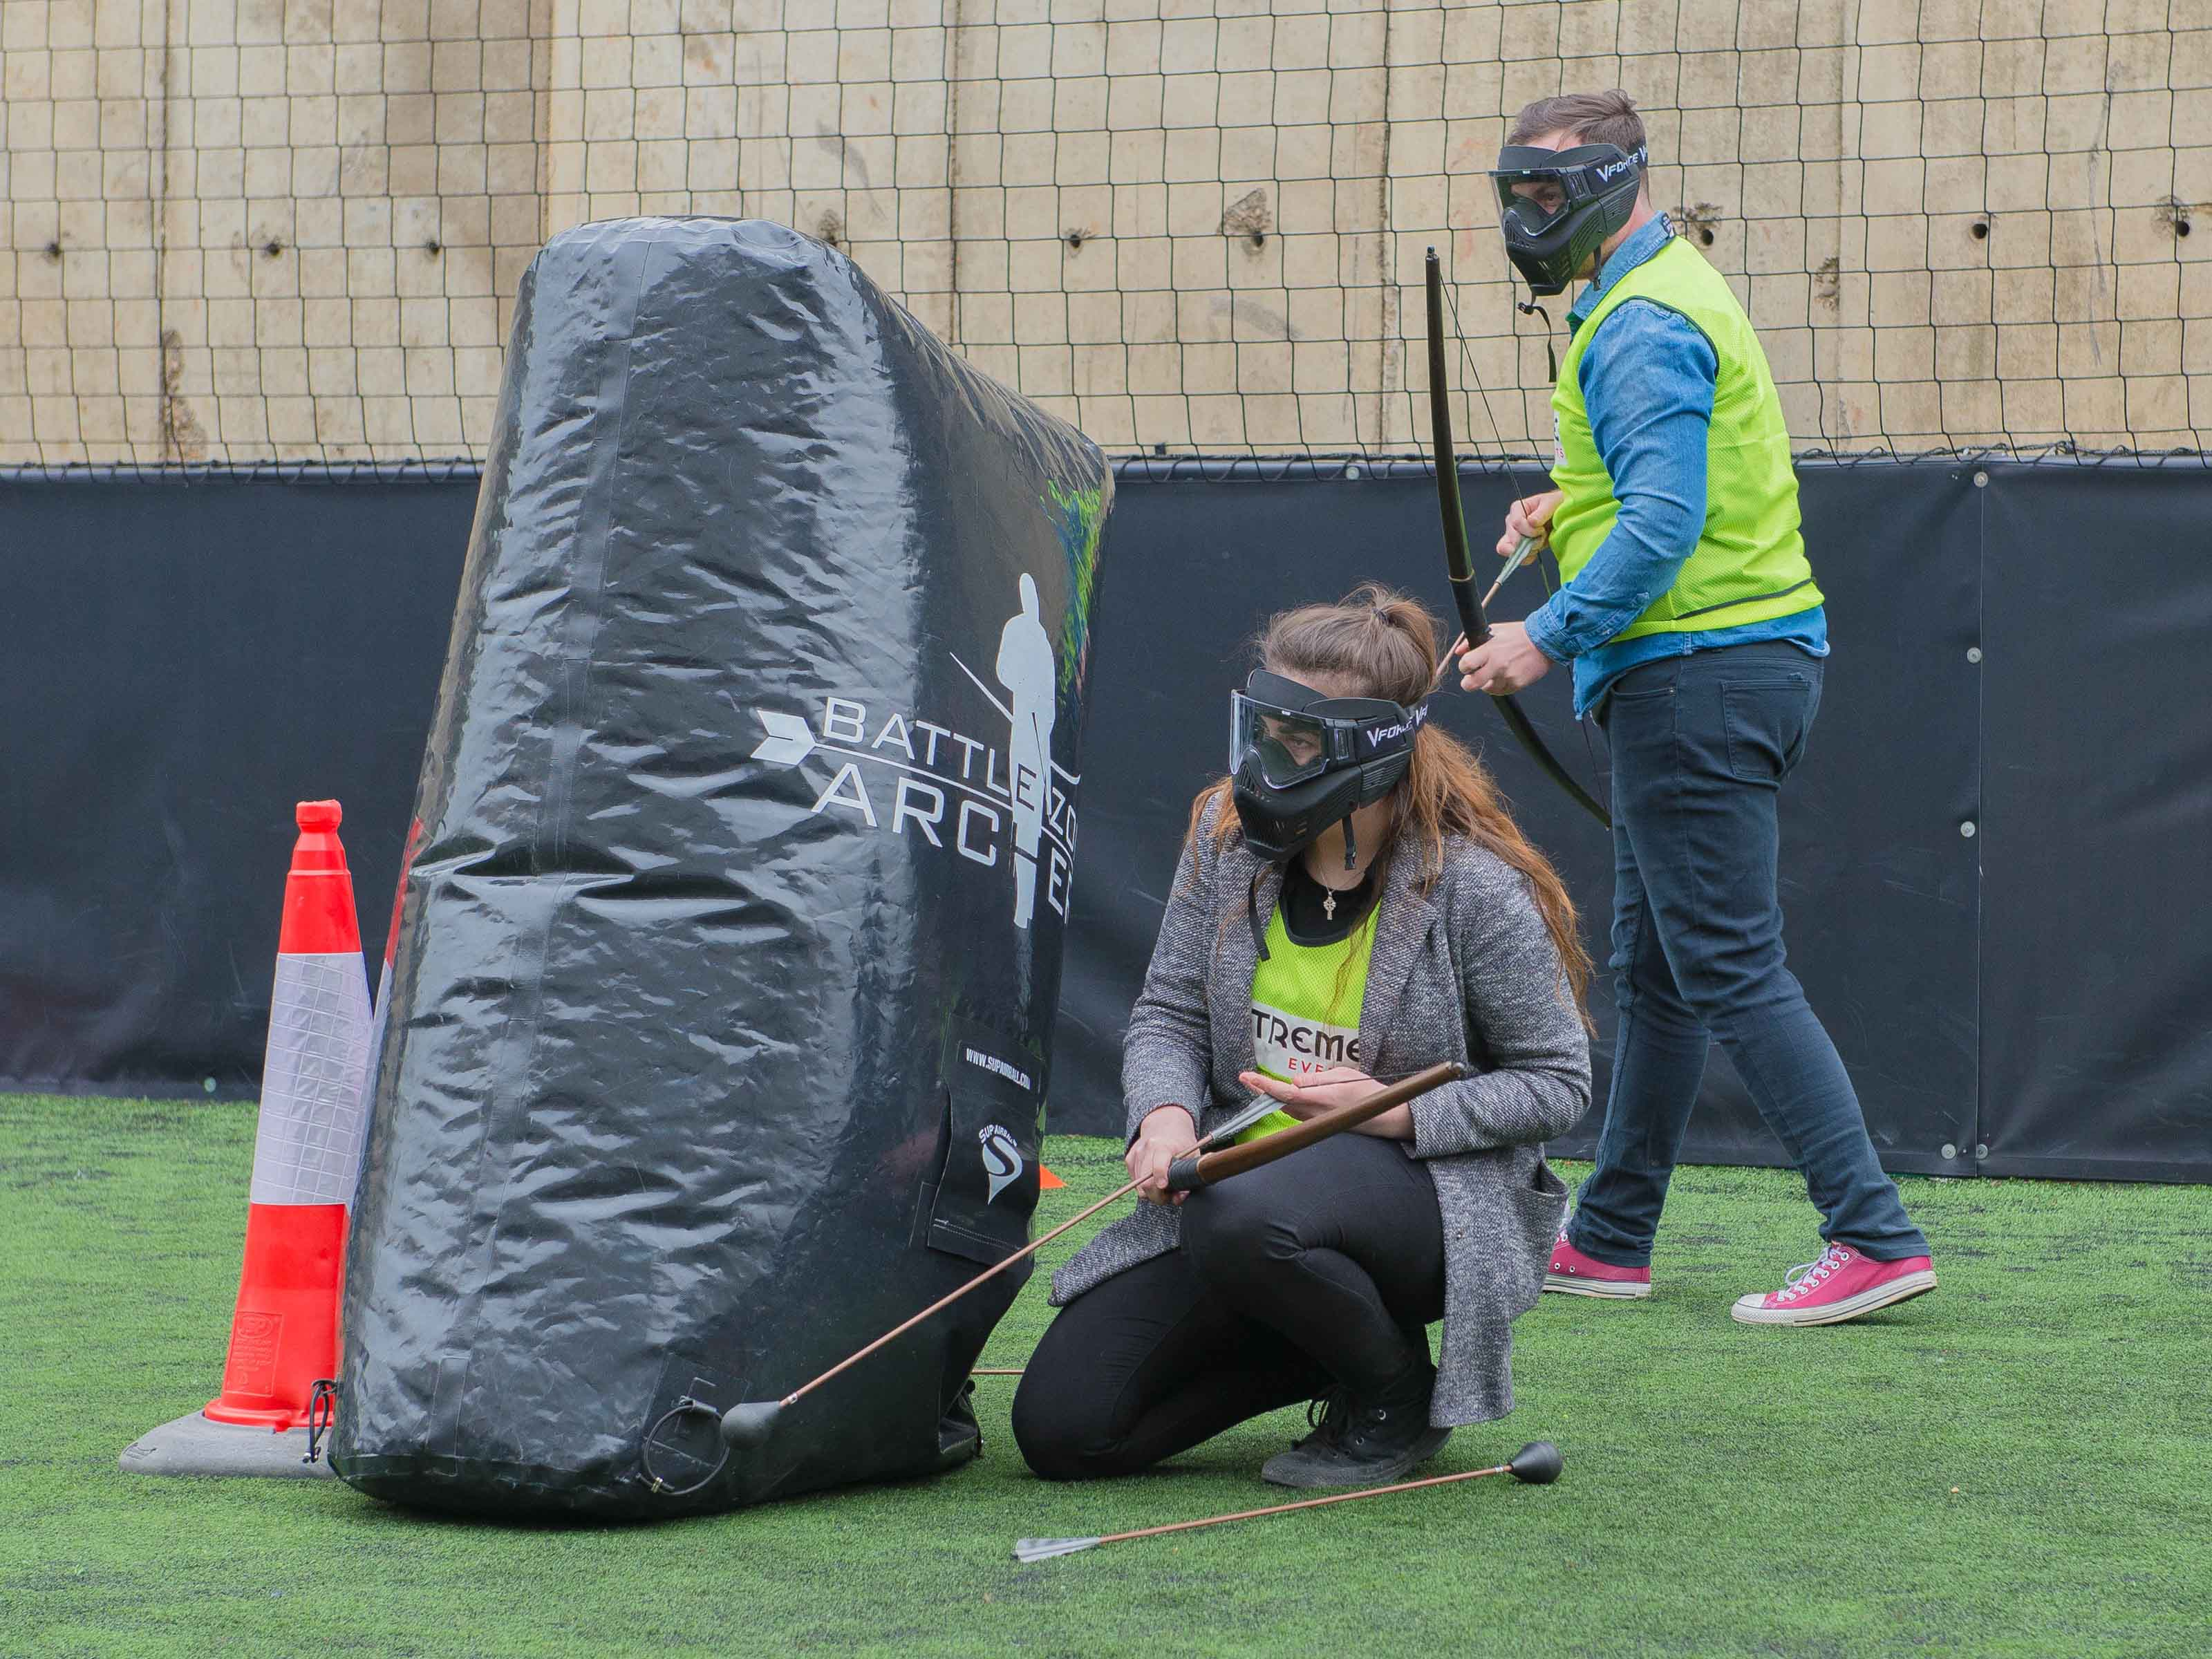 Team Building Battle Archery Tag